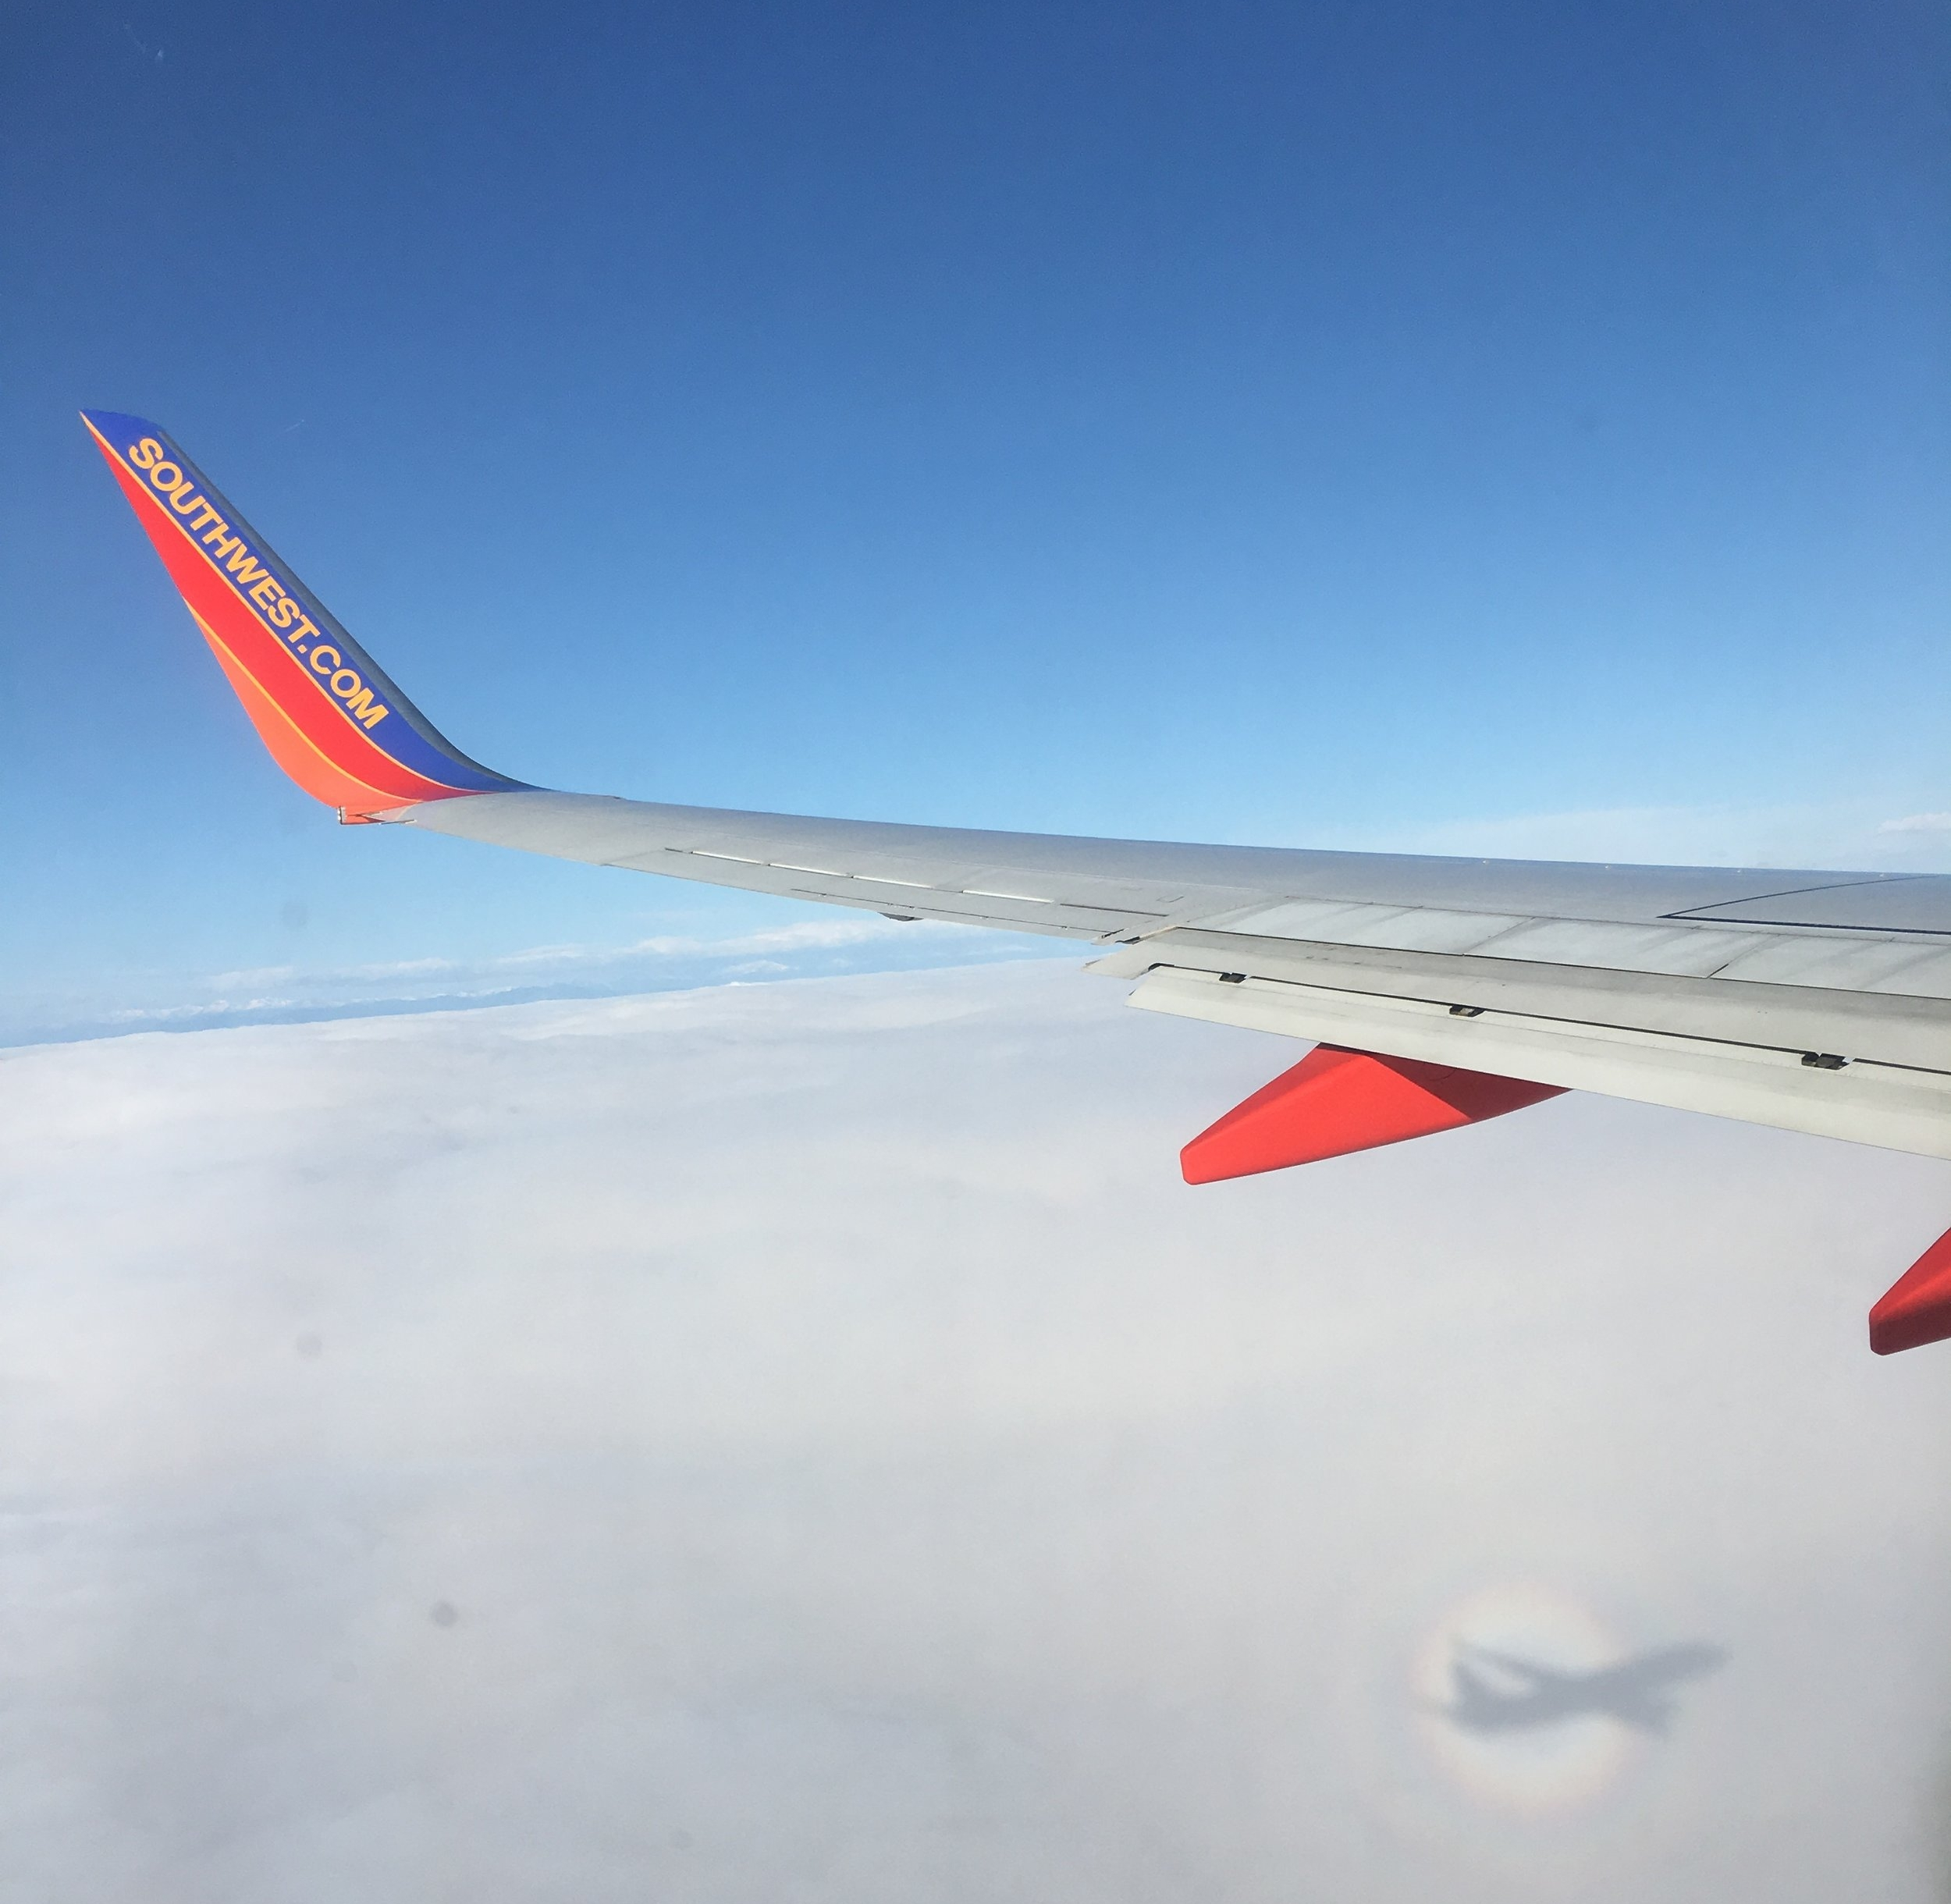 We used to fly American pretty much exclusively. NEXT. Southwest has become our GO-TO Airline and we LOVE them. We change our plans a lot, so their no-change fee policy is everything to us. Also, can you say FREE DRINK COUPONS? And also, free bags. Done and done. We love you Southwest.